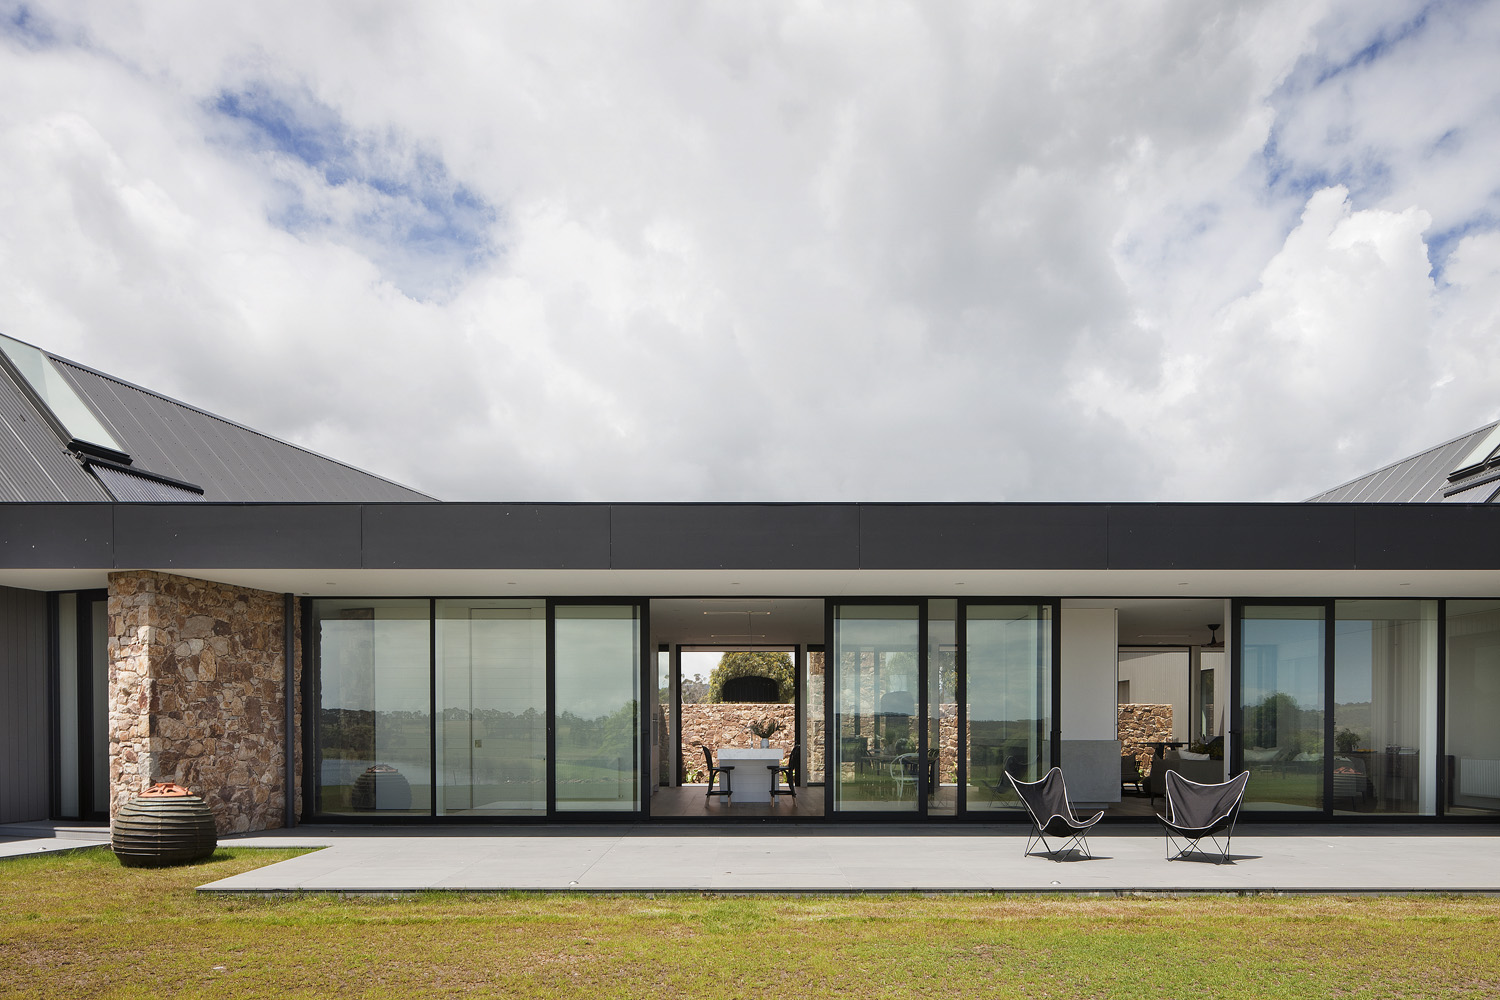 This home is full of light, which can be credited to the sliding glass doors on both sides